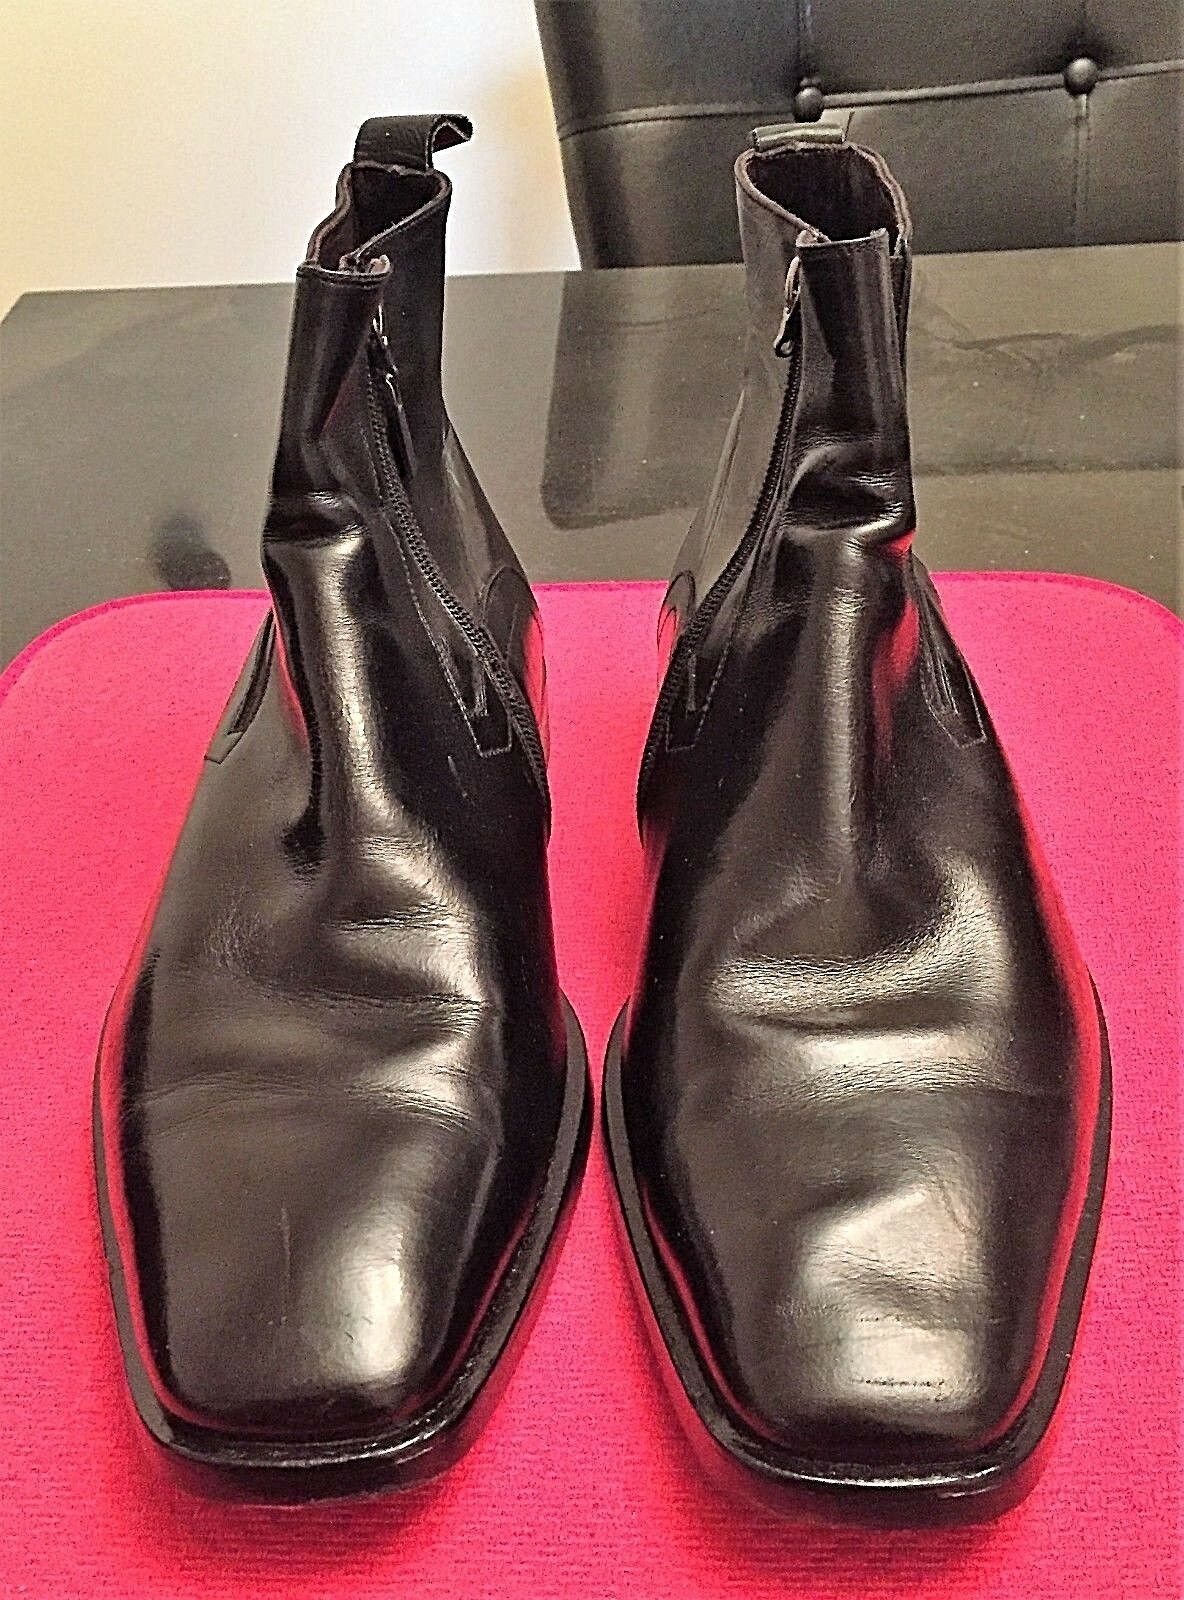 BRUNO MAGLI MEN'S BLACK CALF LEATHER MID ANKLE BOOTS SIZE 11M MINT